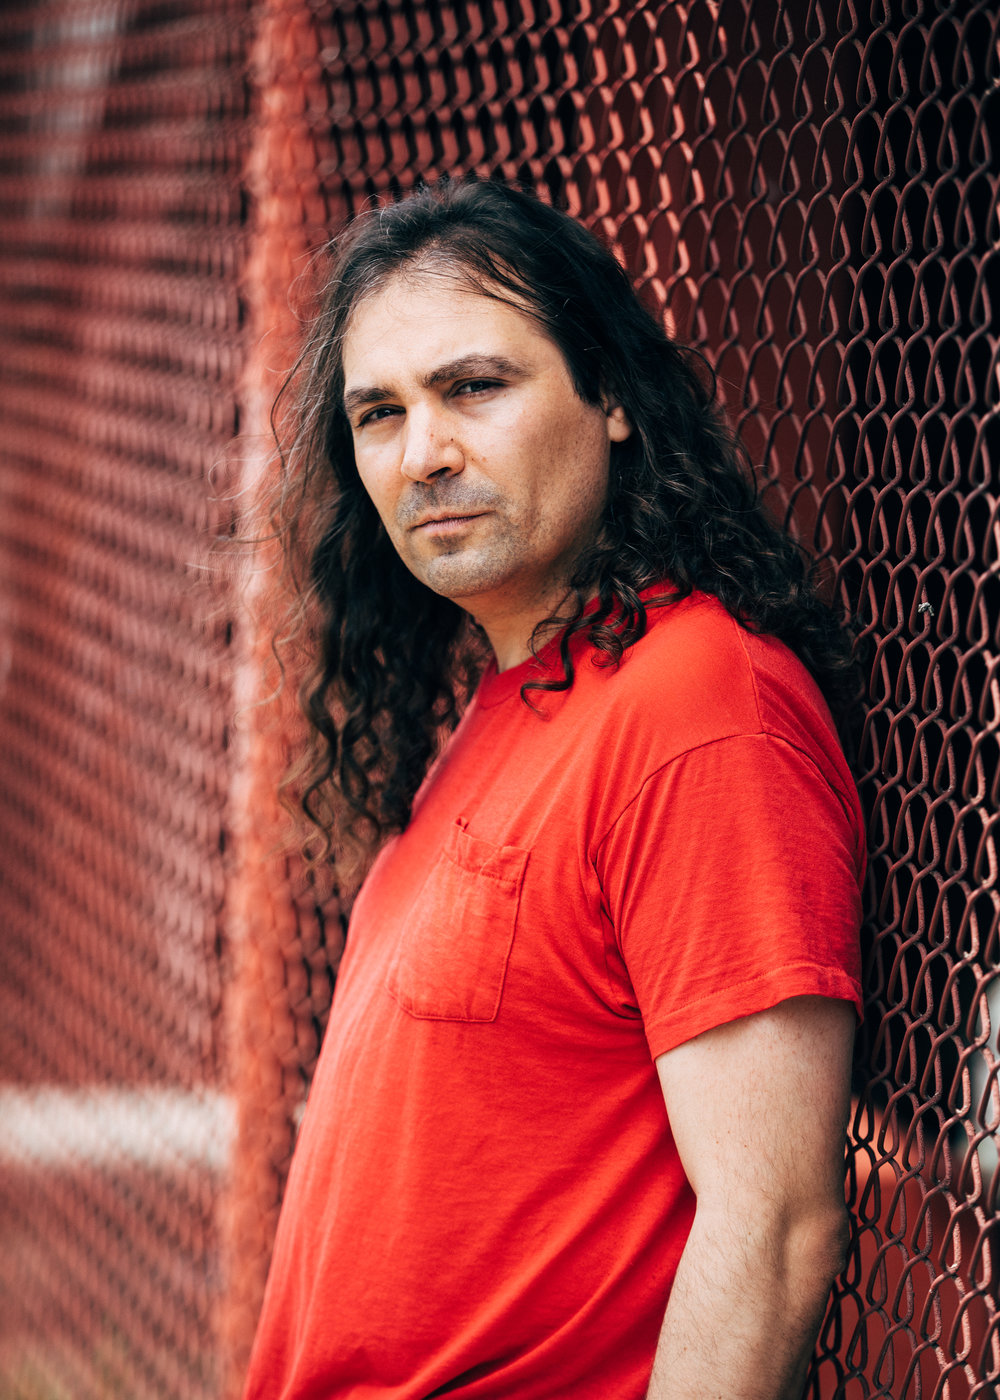 Adam Granduciel of The War on Drugs for Malibu Magazine